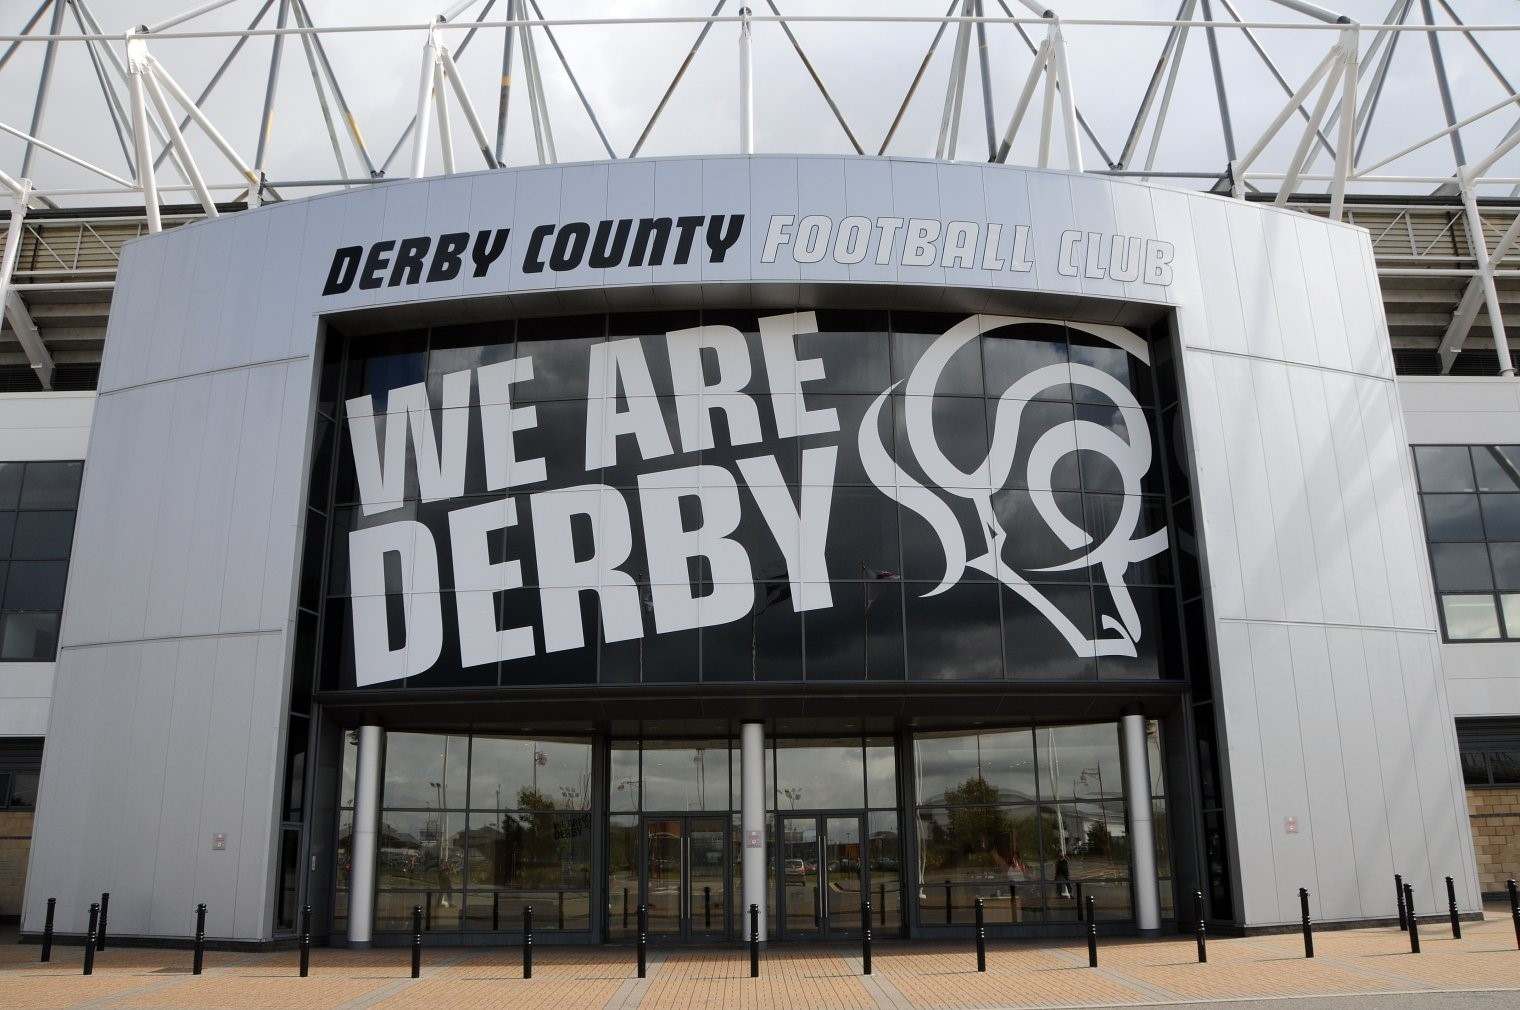 Picture of Derby County Football Club